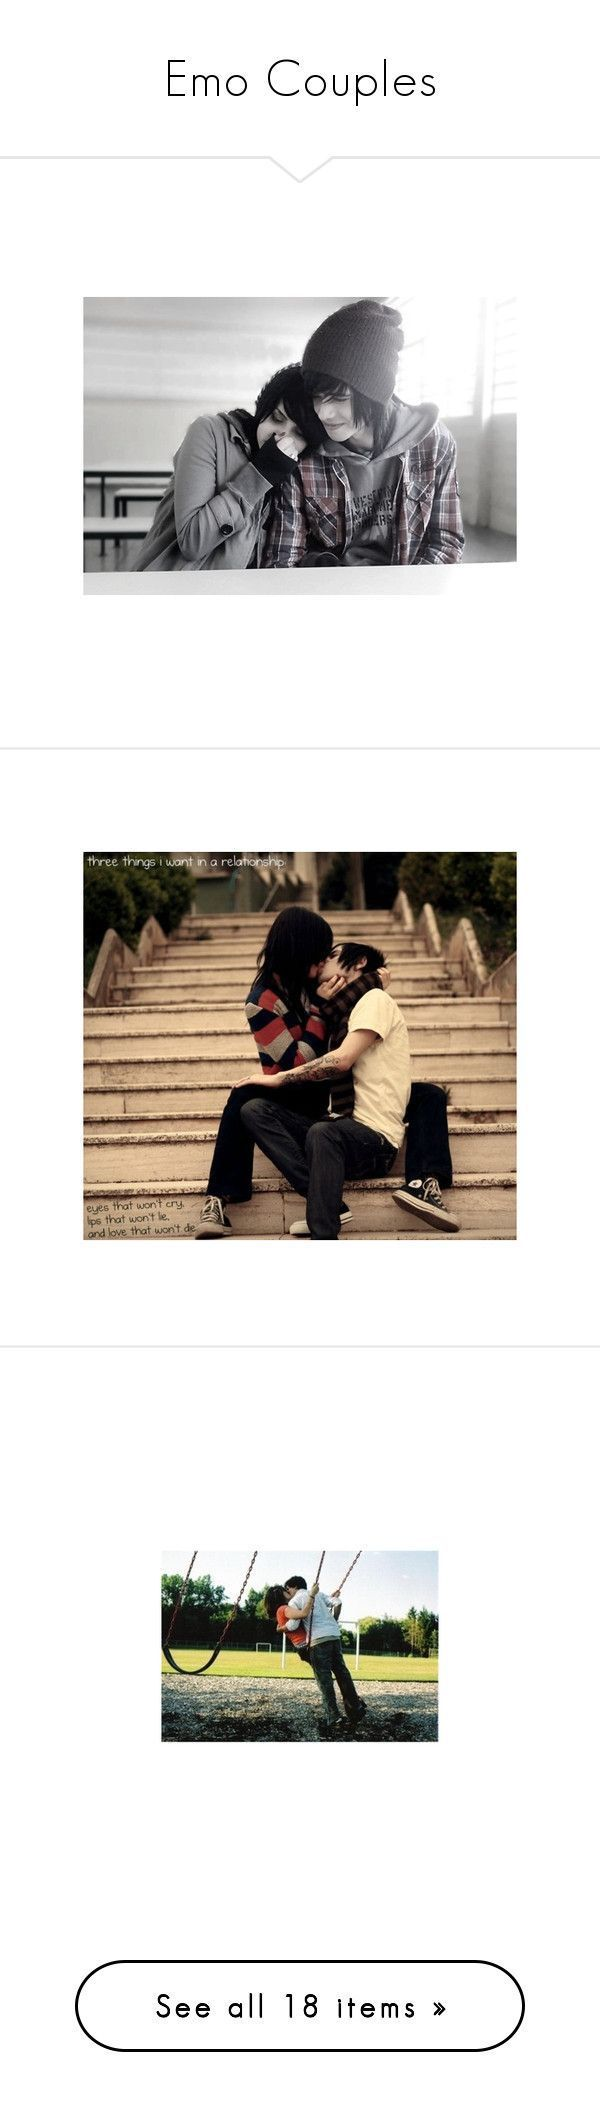 Emo Couples by candice-williams ❤ liked on Polyvore featuring couples, love, pictures, people, backgrounds, cute couples, phrase, quotes, saying and text #emocouples Emo Couples by candice-williams ❤ liked on Polyvore featuring couples, love, pictures, people, backgrounds, cute couples, phrase, quotes, saying and text #emocouples Emo Couples by candice-williams ❤ liked on Polyvore featuring couples, love, pictures, people, backgrounds, cute couples, phrase, quotes, saying and text #emoco #emocouples